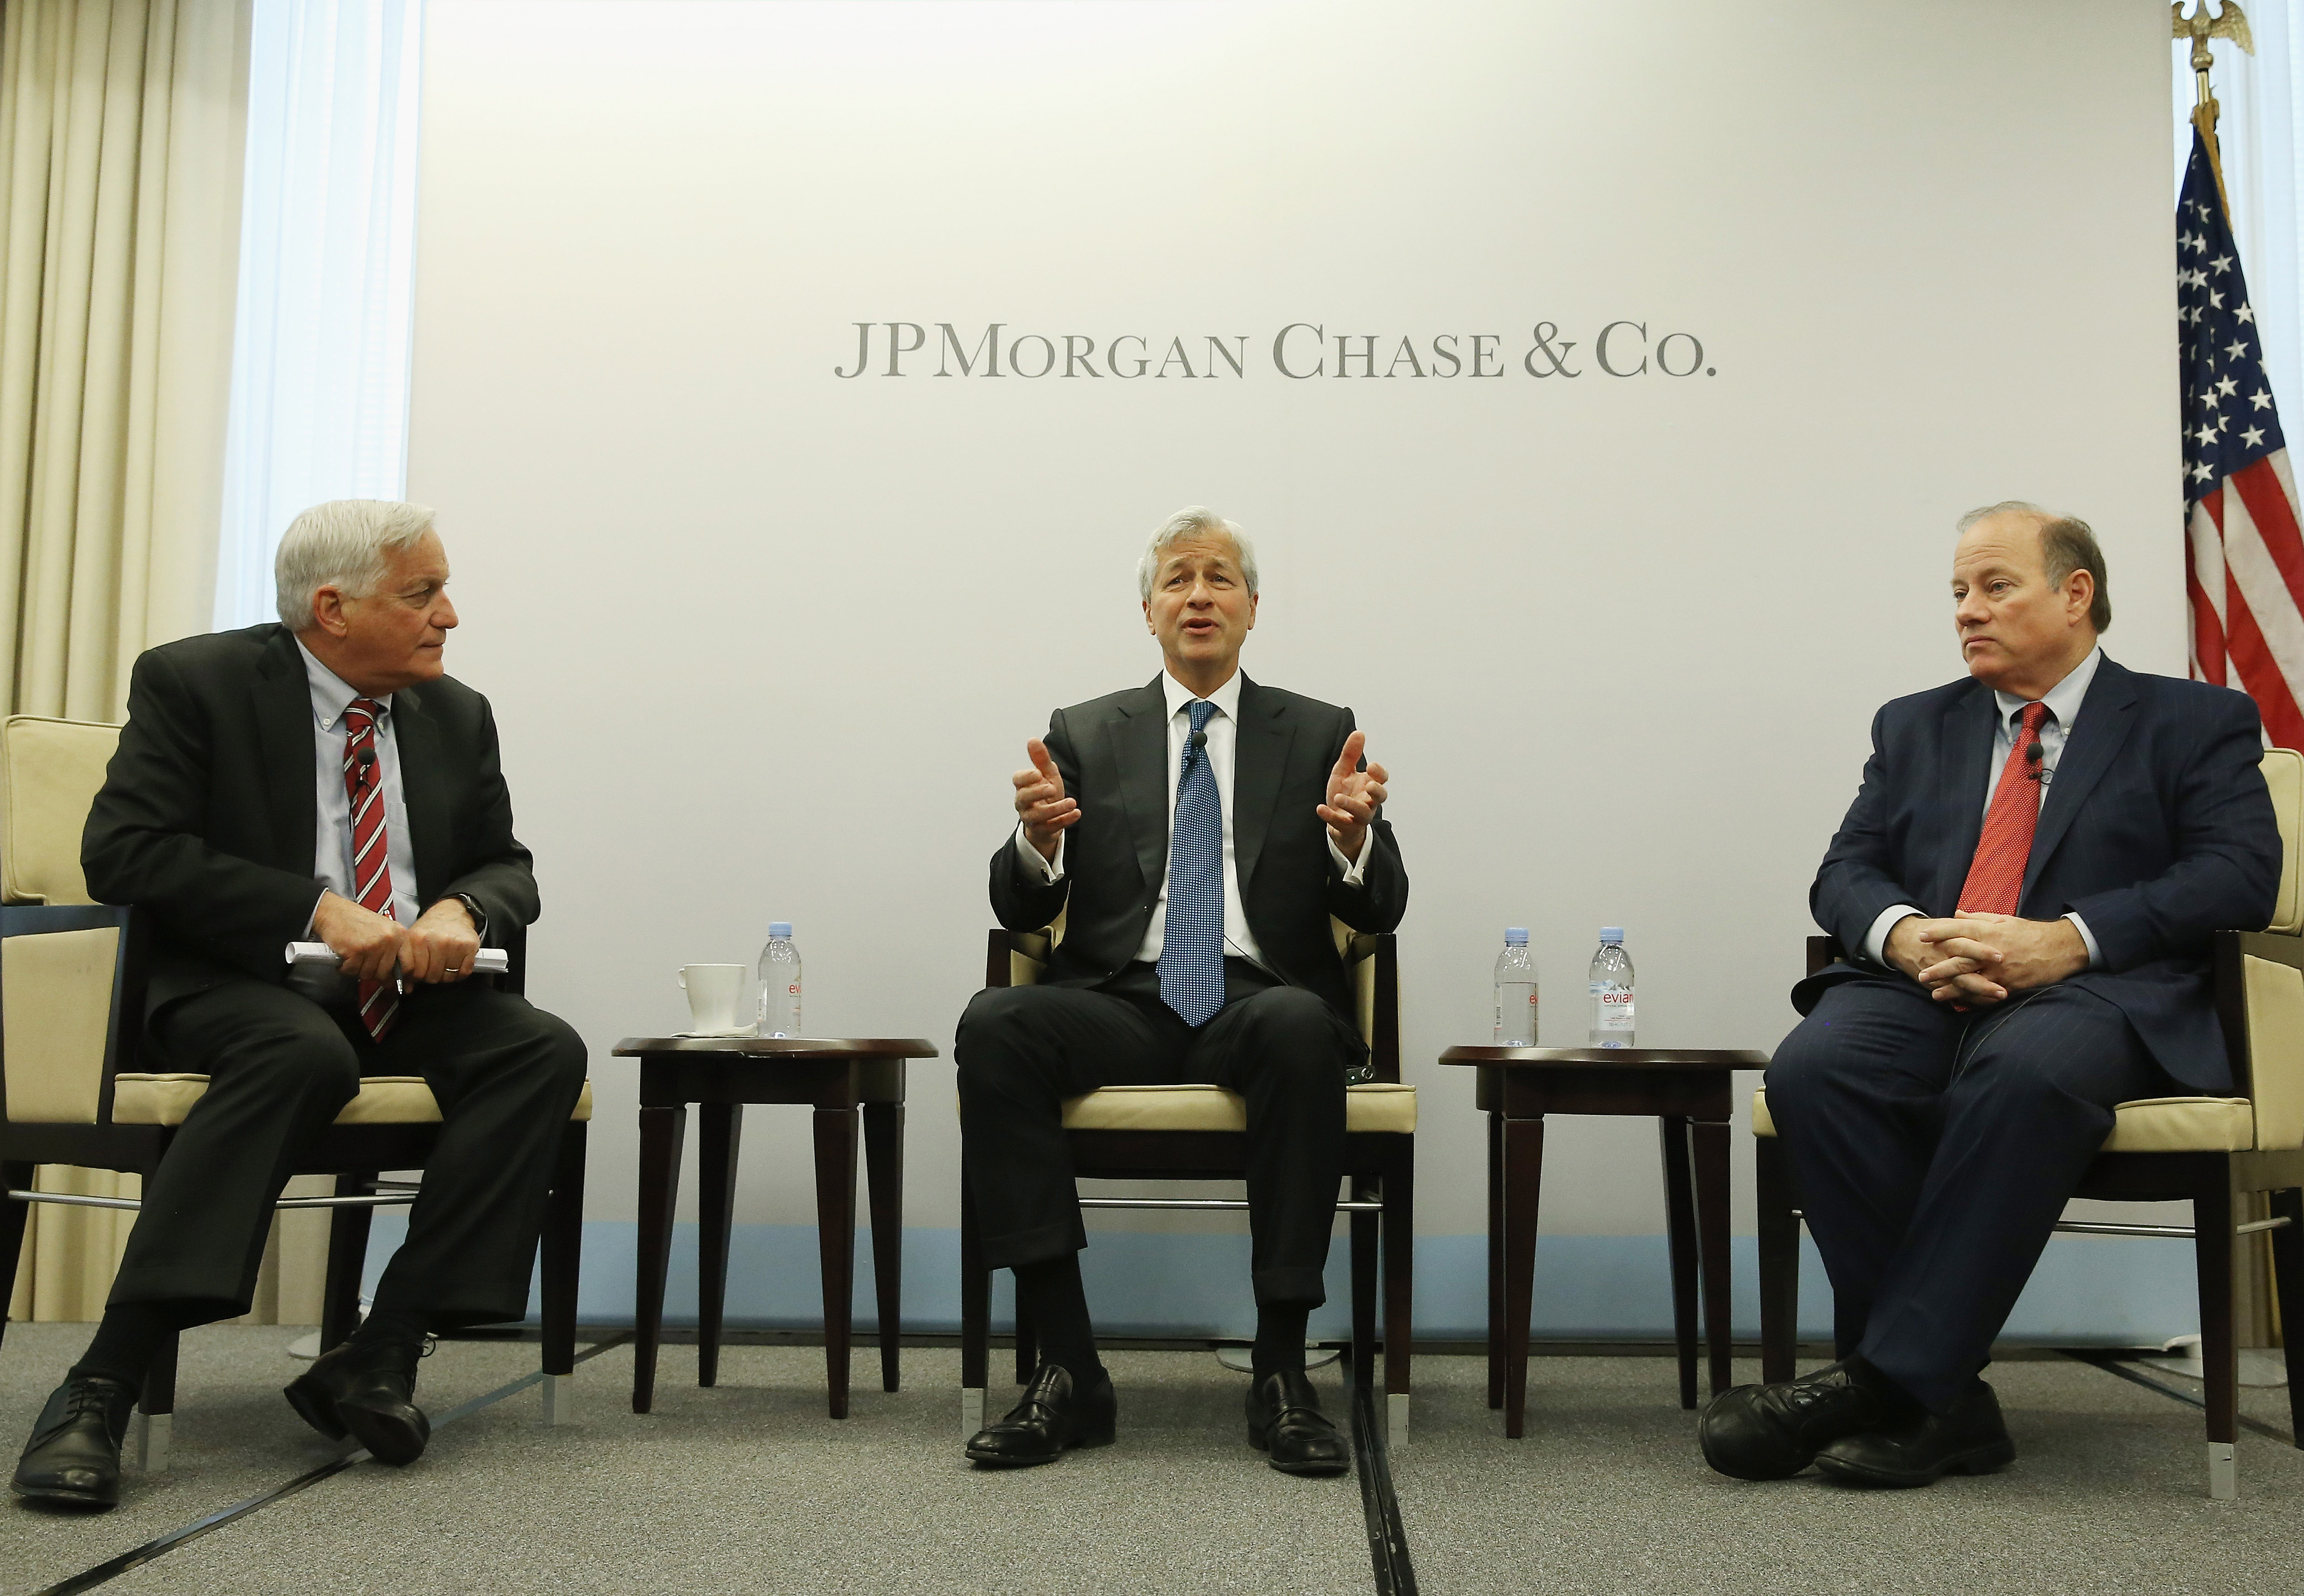 JPMorgan Chase CEO Jamie Dimon And Detroit Mayor Duggan Discuss The Bank's Investment In Detroit